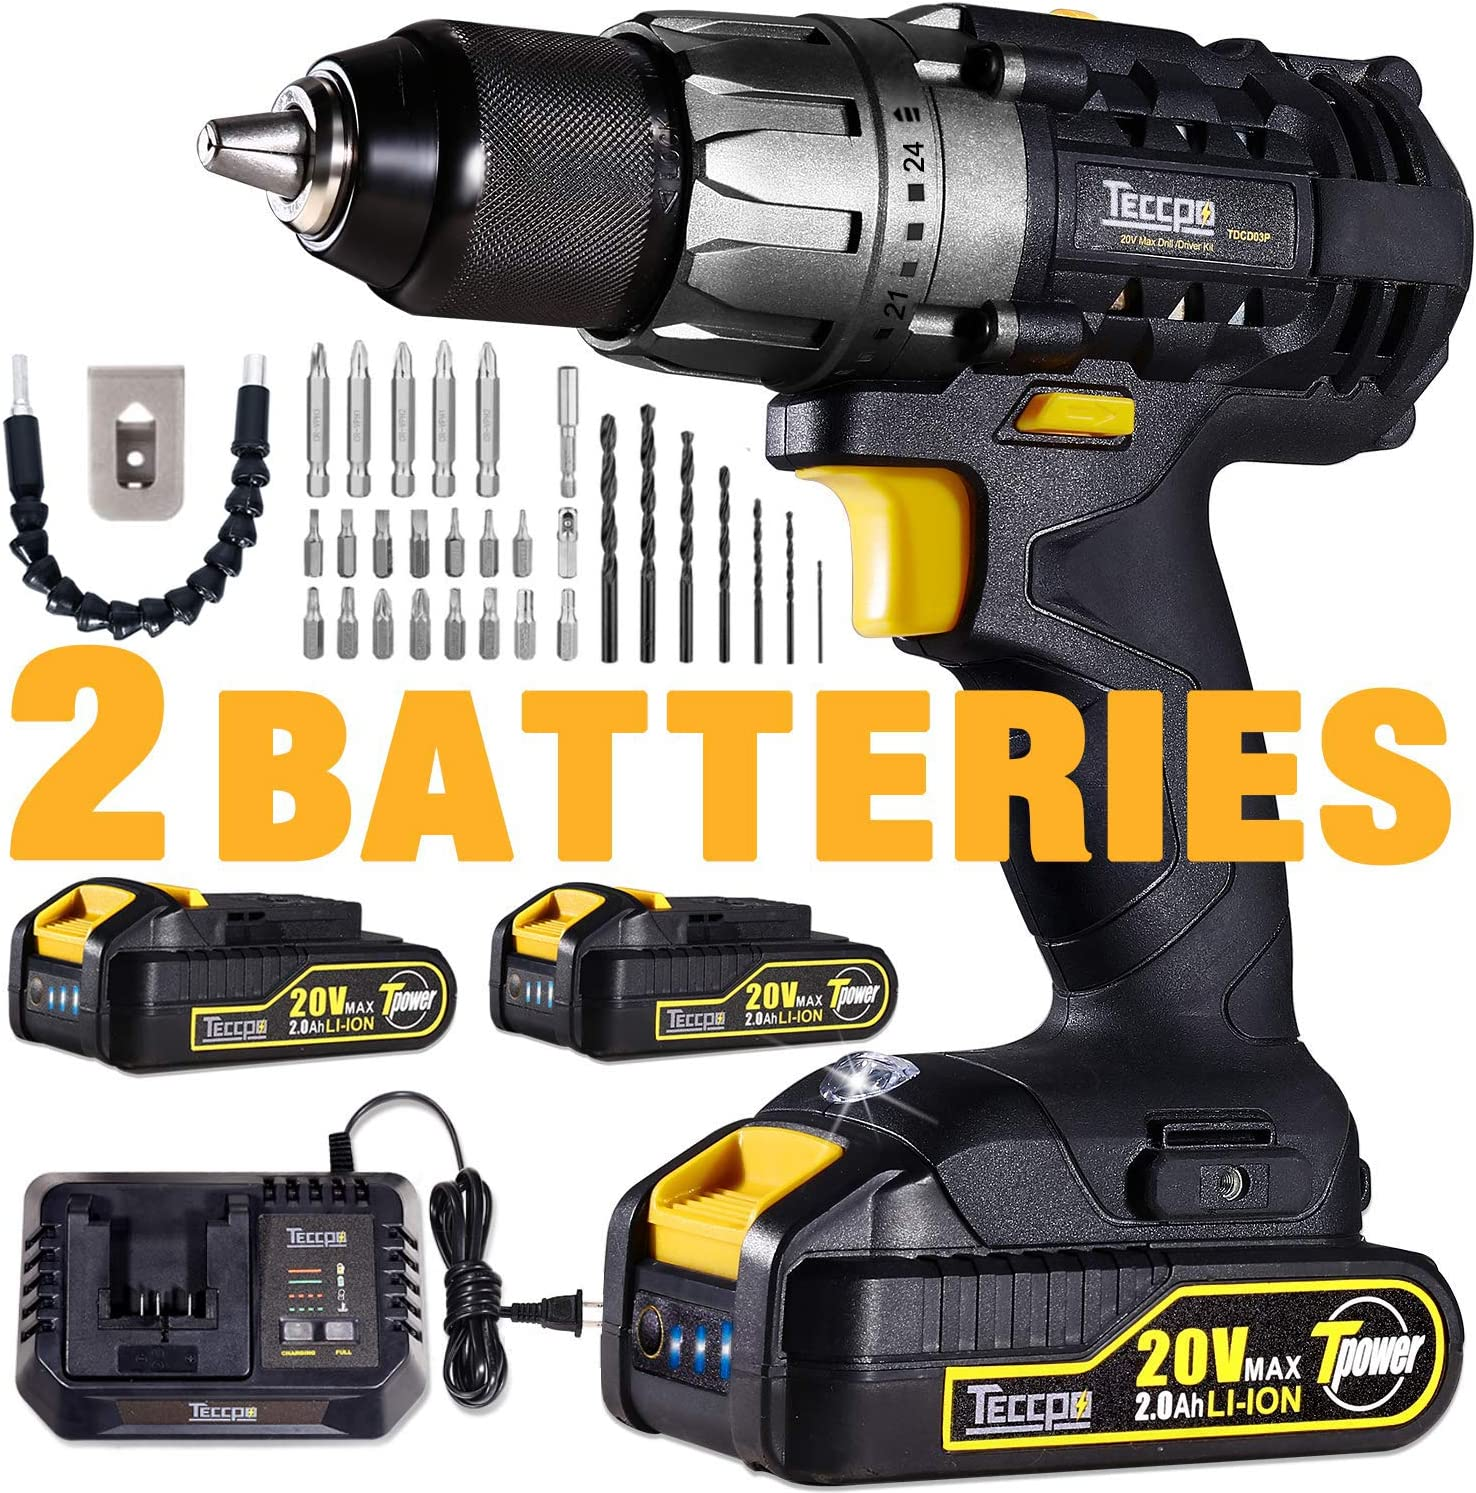 Cordless Drill, 20V Drill Driver 2x2000mAh Batteries, 30Min Fast Charger 4.0A, 530 In-lbs Torque, 24 1 Torque Setting, 2-Variable Speed, 29pcs Accessories, 1 2 Metal Keyless Chuck